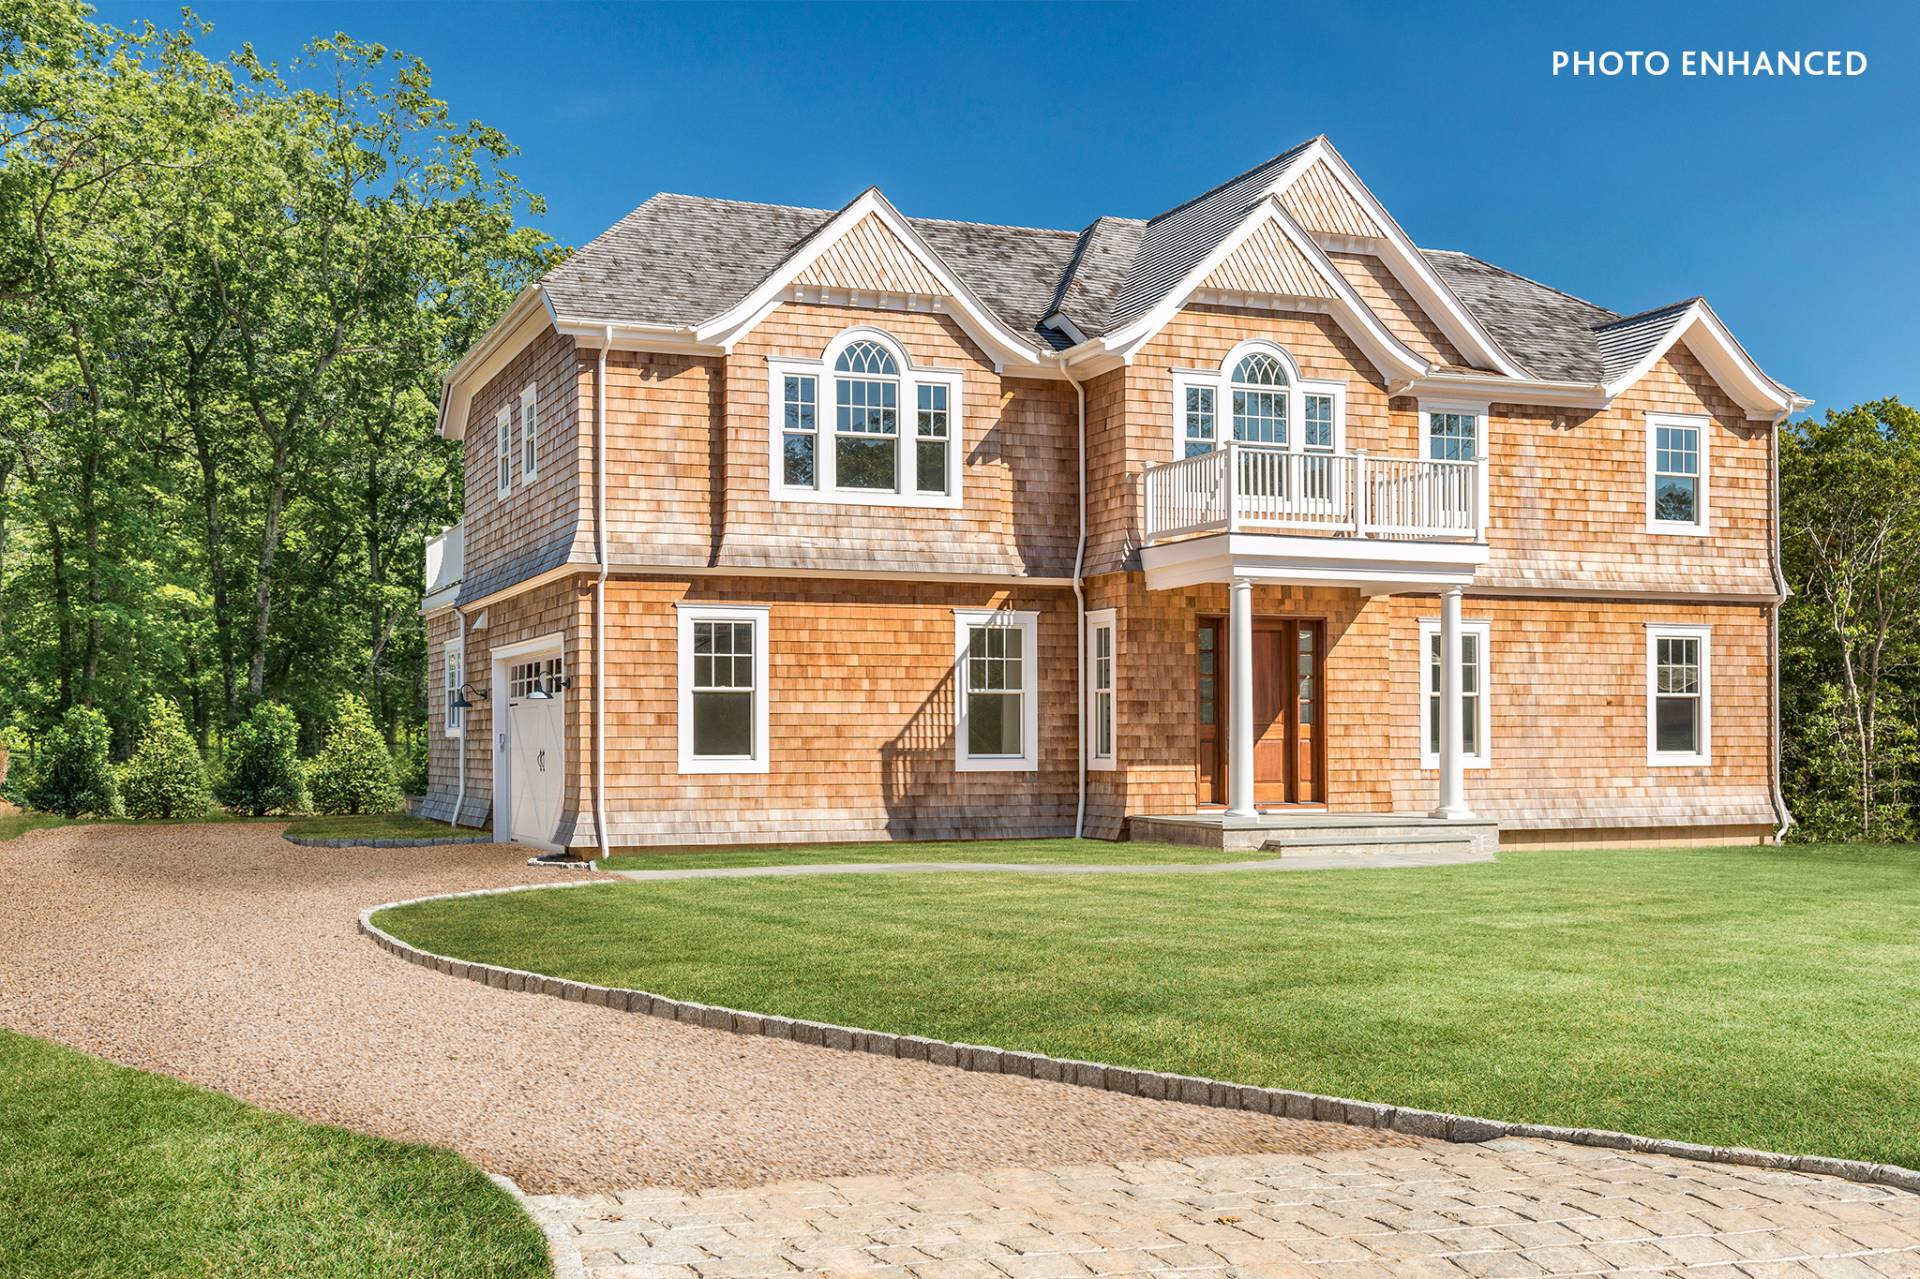 Single Family Home for Sale at Introducing The Cameron At Barn & Vine Bridgehampton. 81 Birchwood Lane, (Lot 21, Cameron), Bridgehampton, New York